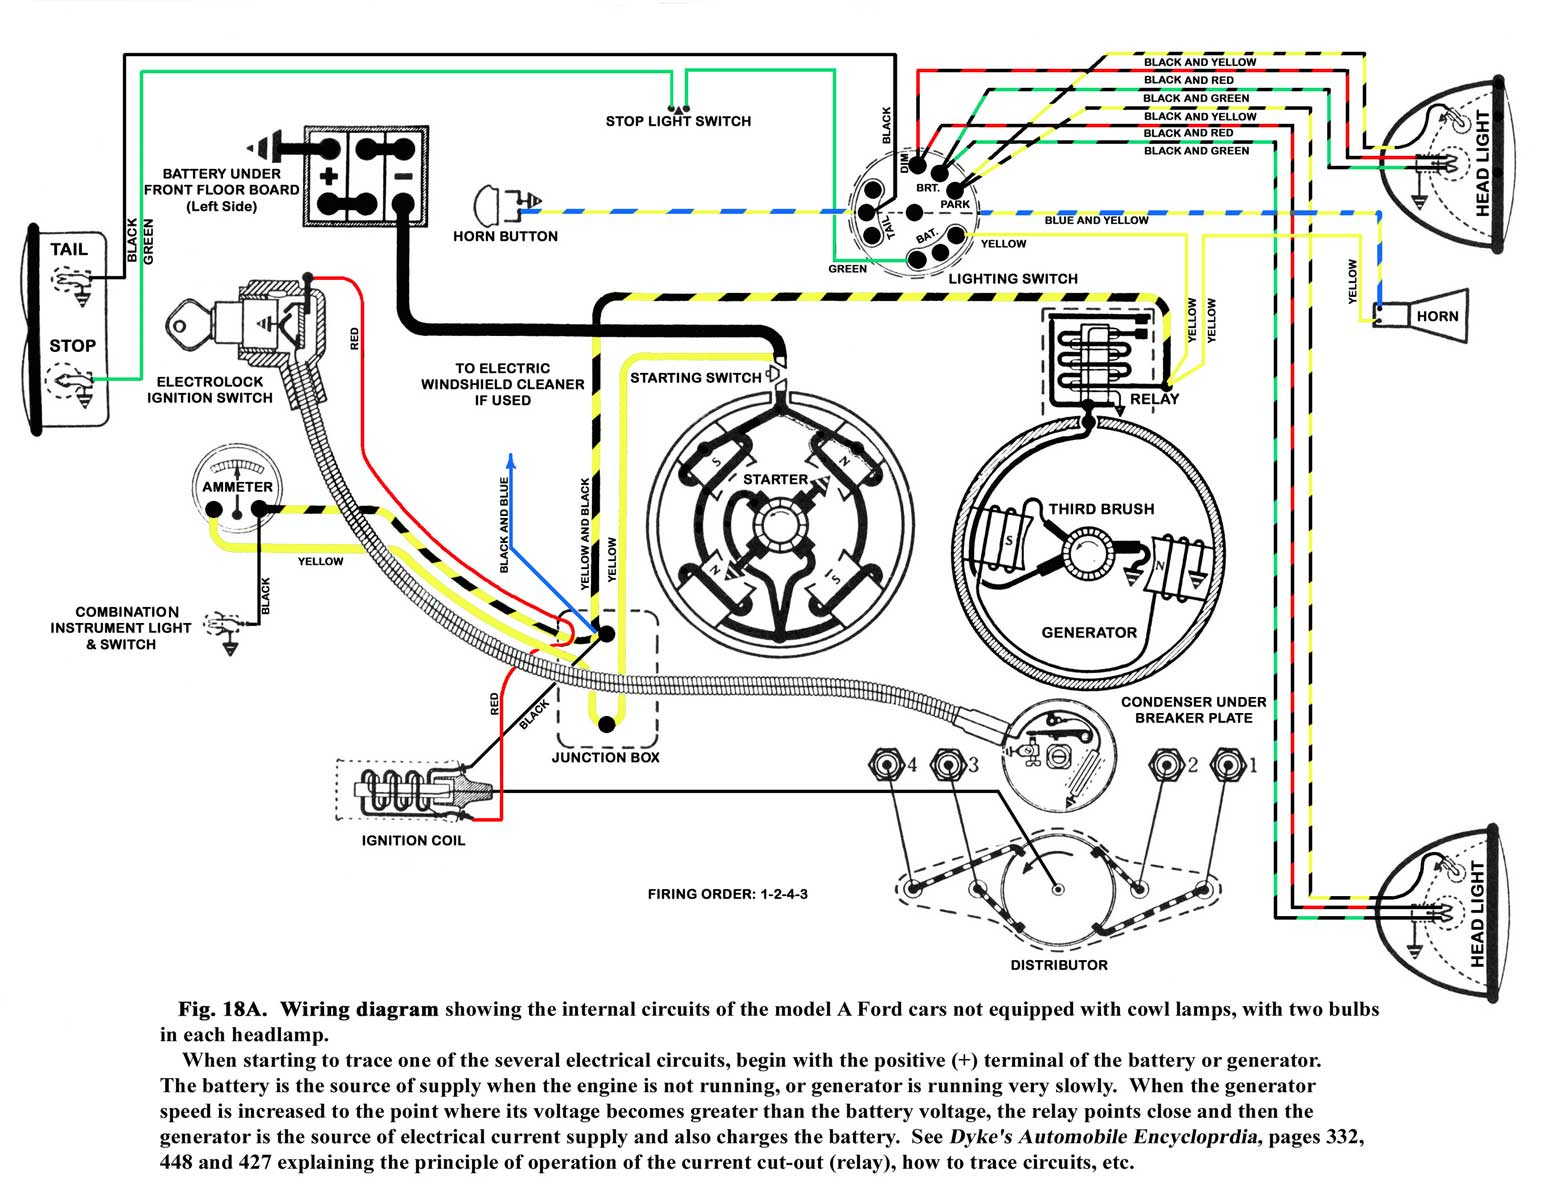 30 model a wire diagram wiring diagram detailed model a ford generator wiring 30 model a wire diagram [ 1546 x 1195 Pixel ]